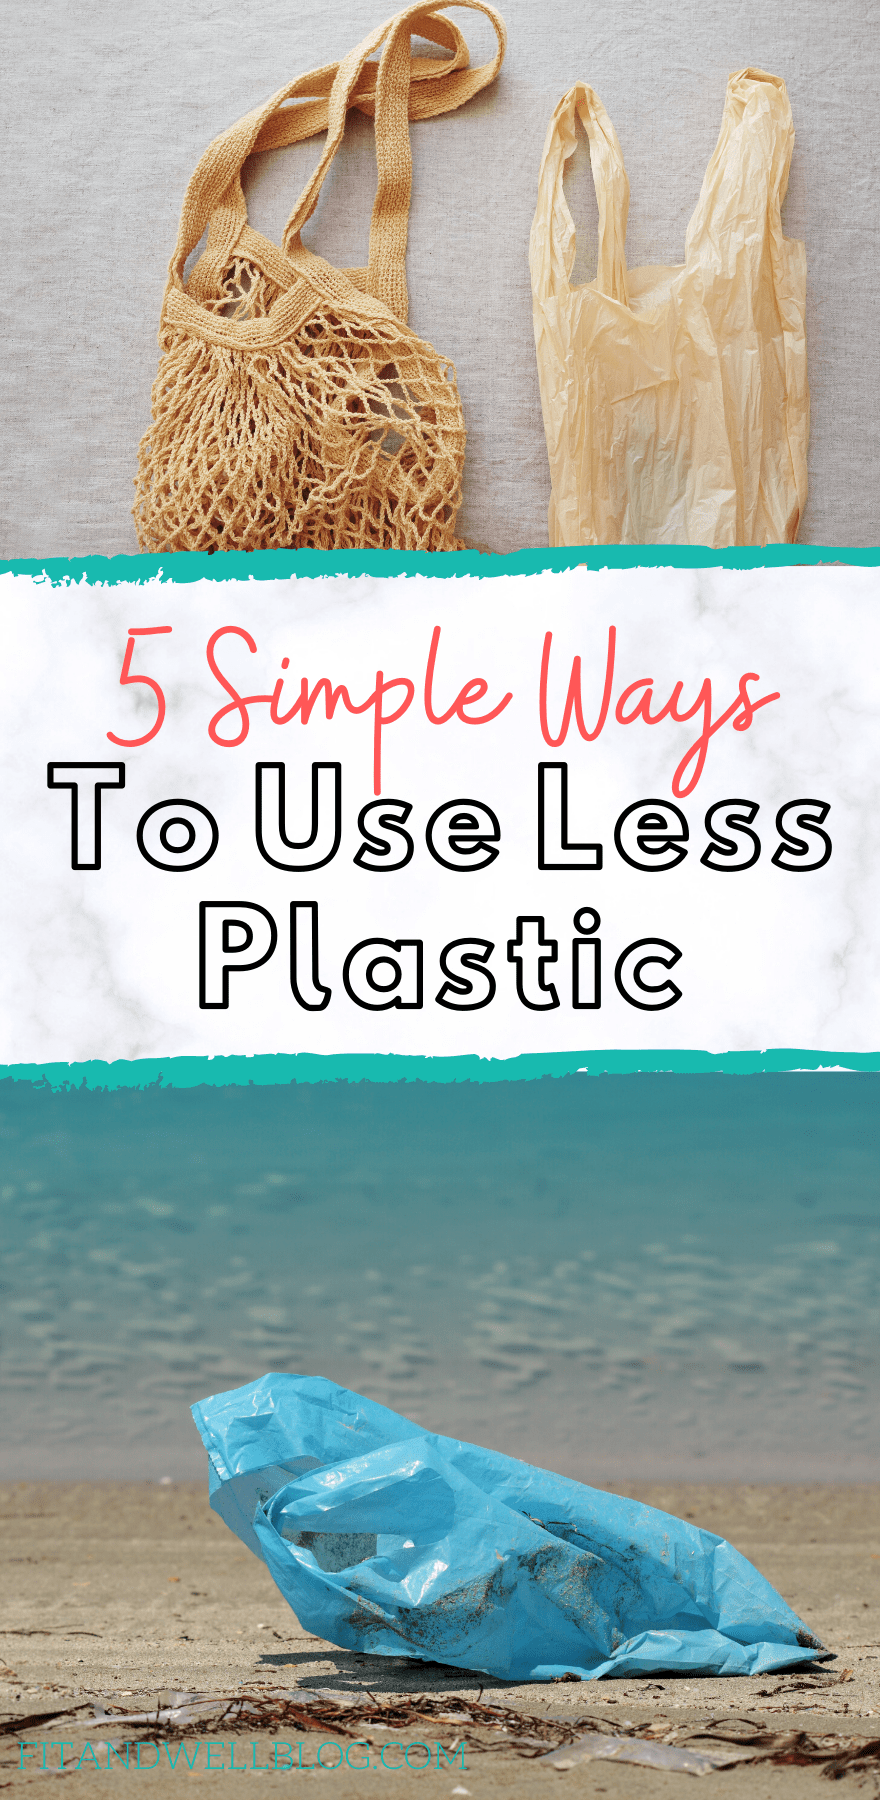 5 simple ways to use less plastic - fitandwellblog.com